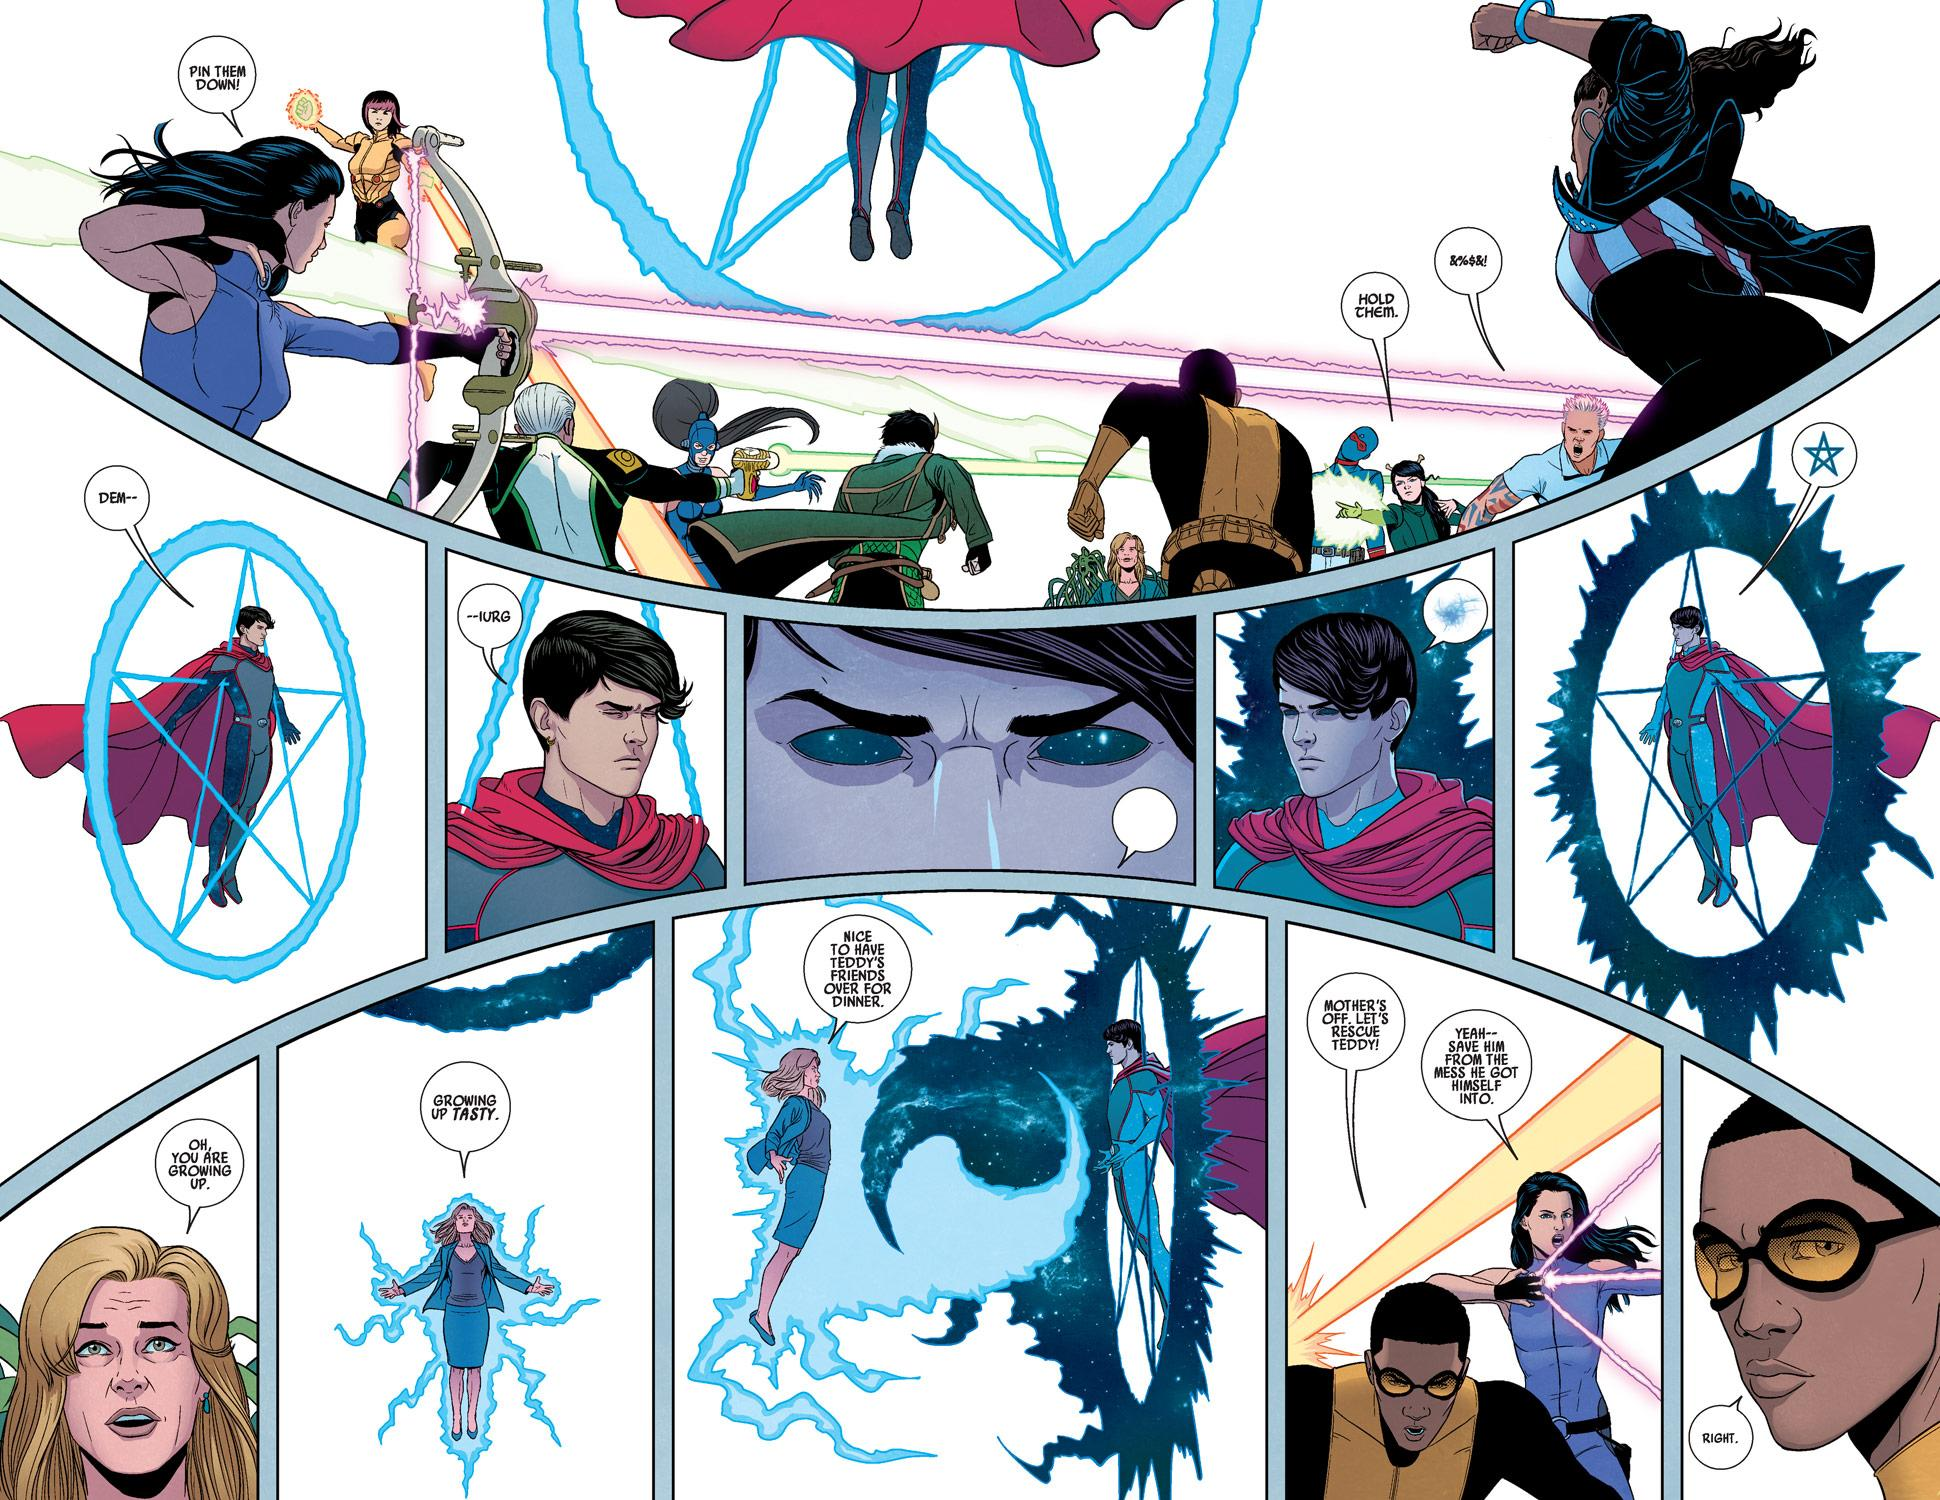 Young Avengers Mic-Drop at the Edge review